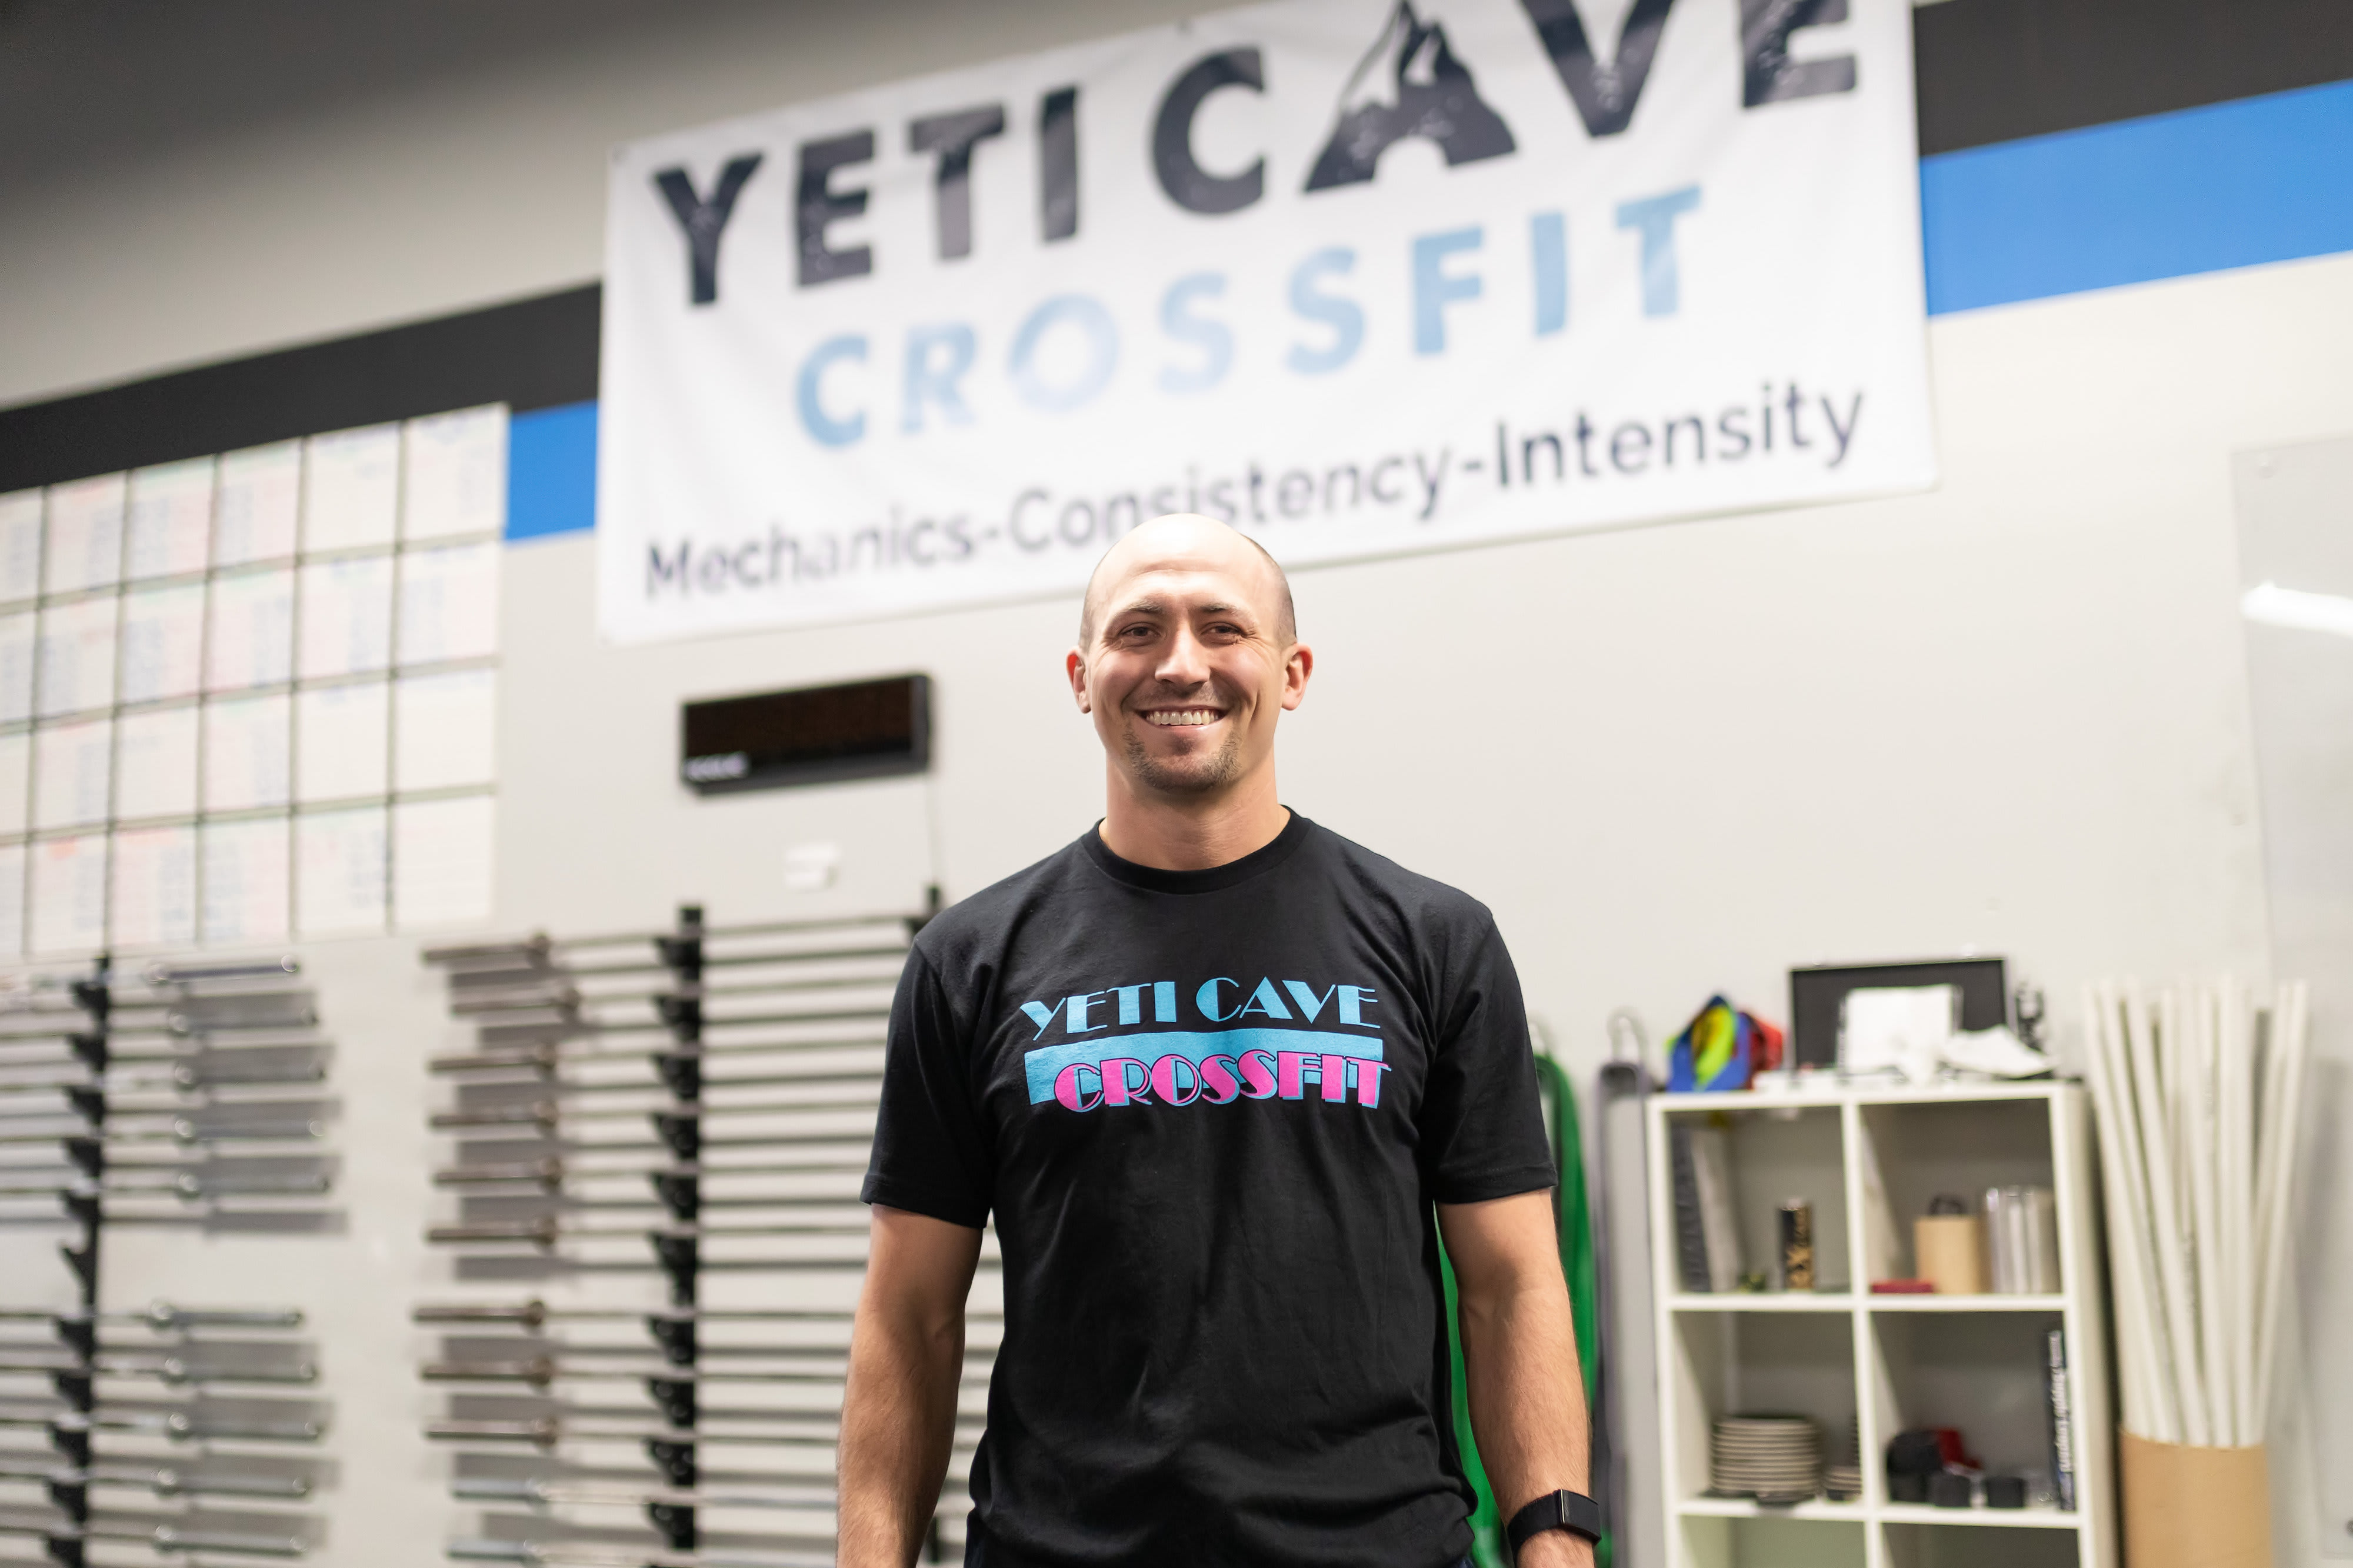 Nate Seitz  in Fort Collins - Yeti Cave CrossFit